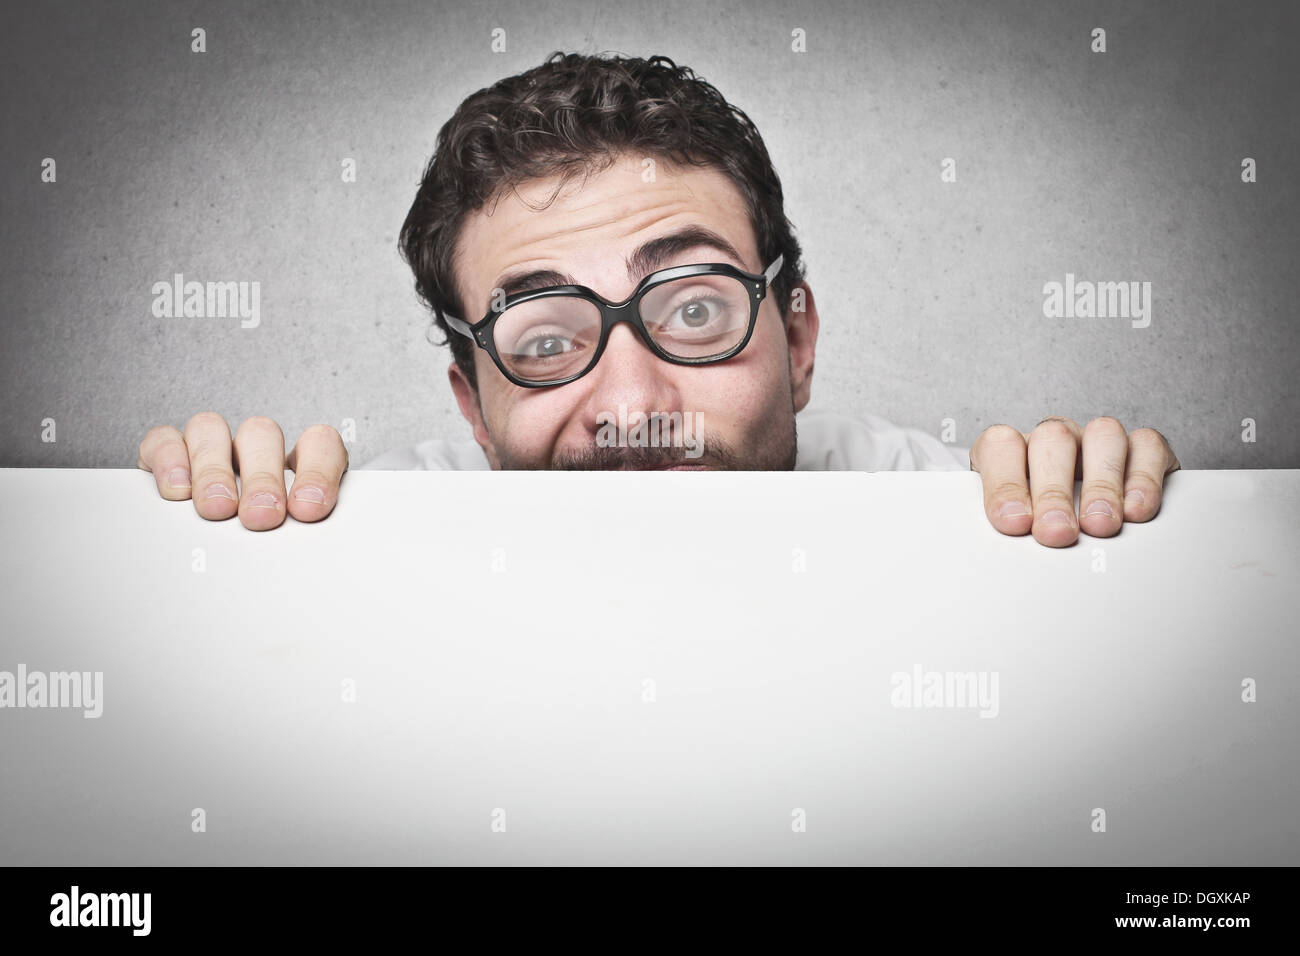 Man holding an empty cardboard - Stock Image